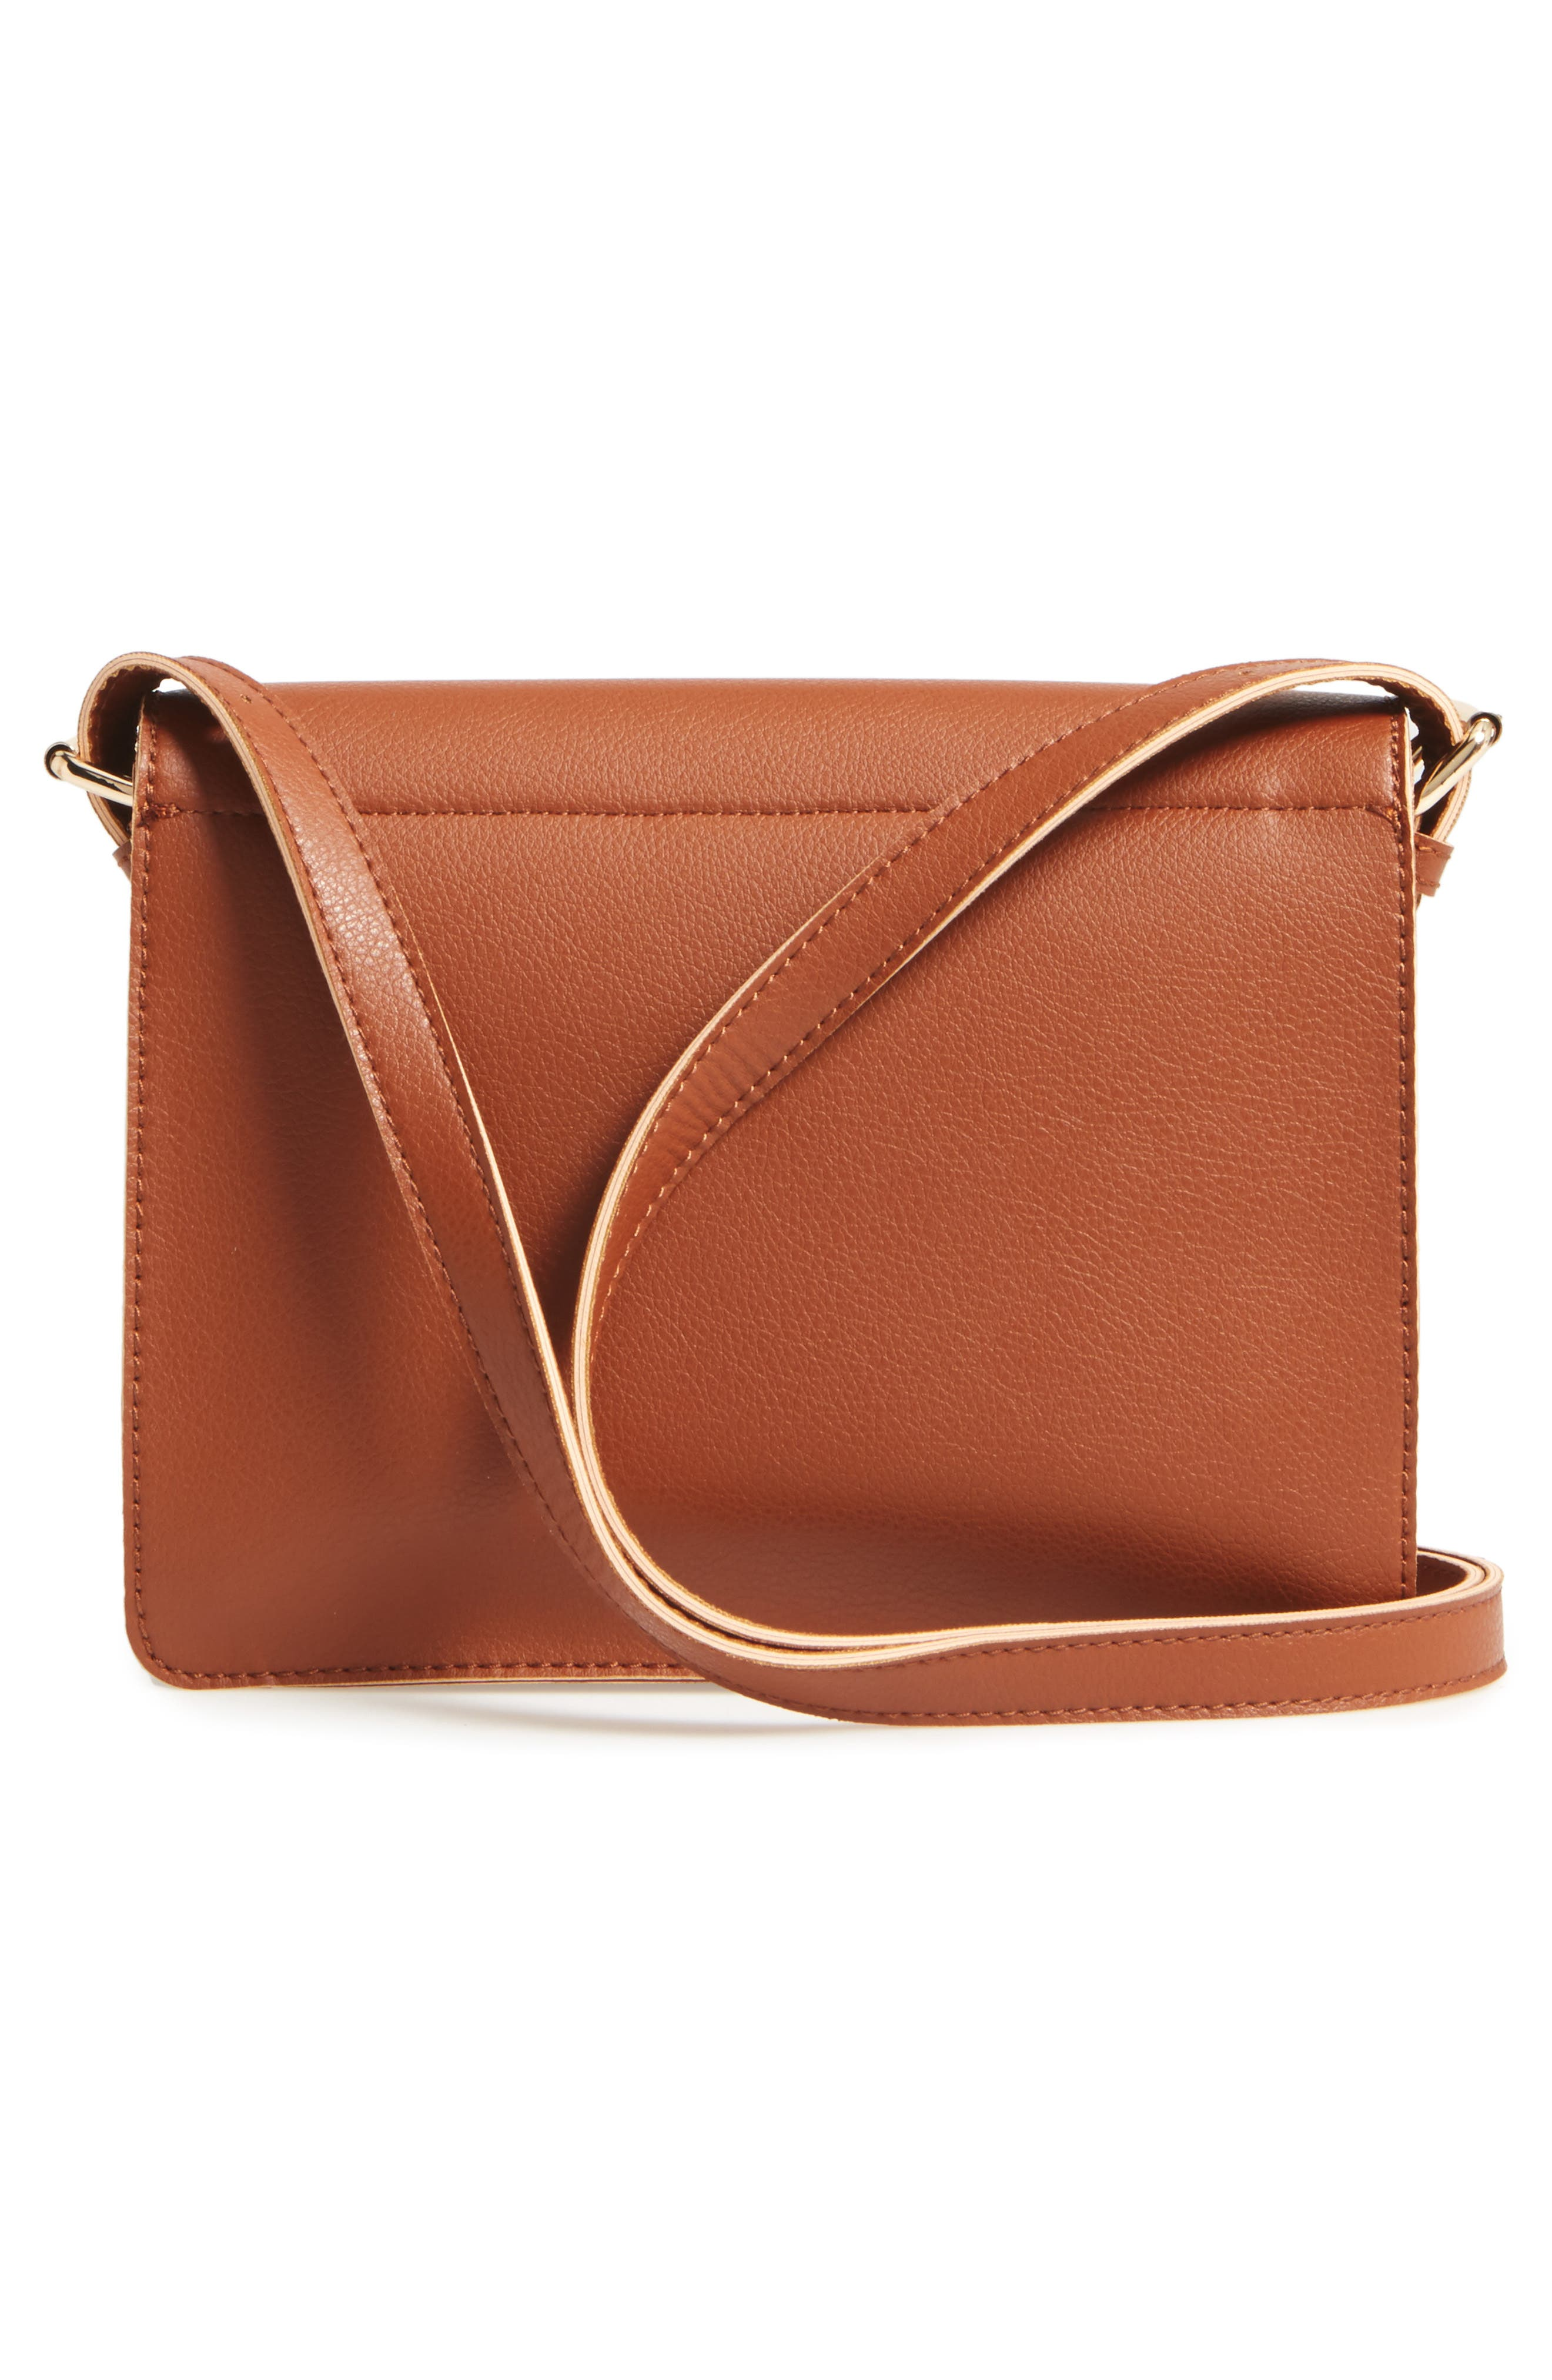 'Michelle' Faux Leather Crossbody Bag,                             Alternate thumbnail 3, color,                             New Cognac